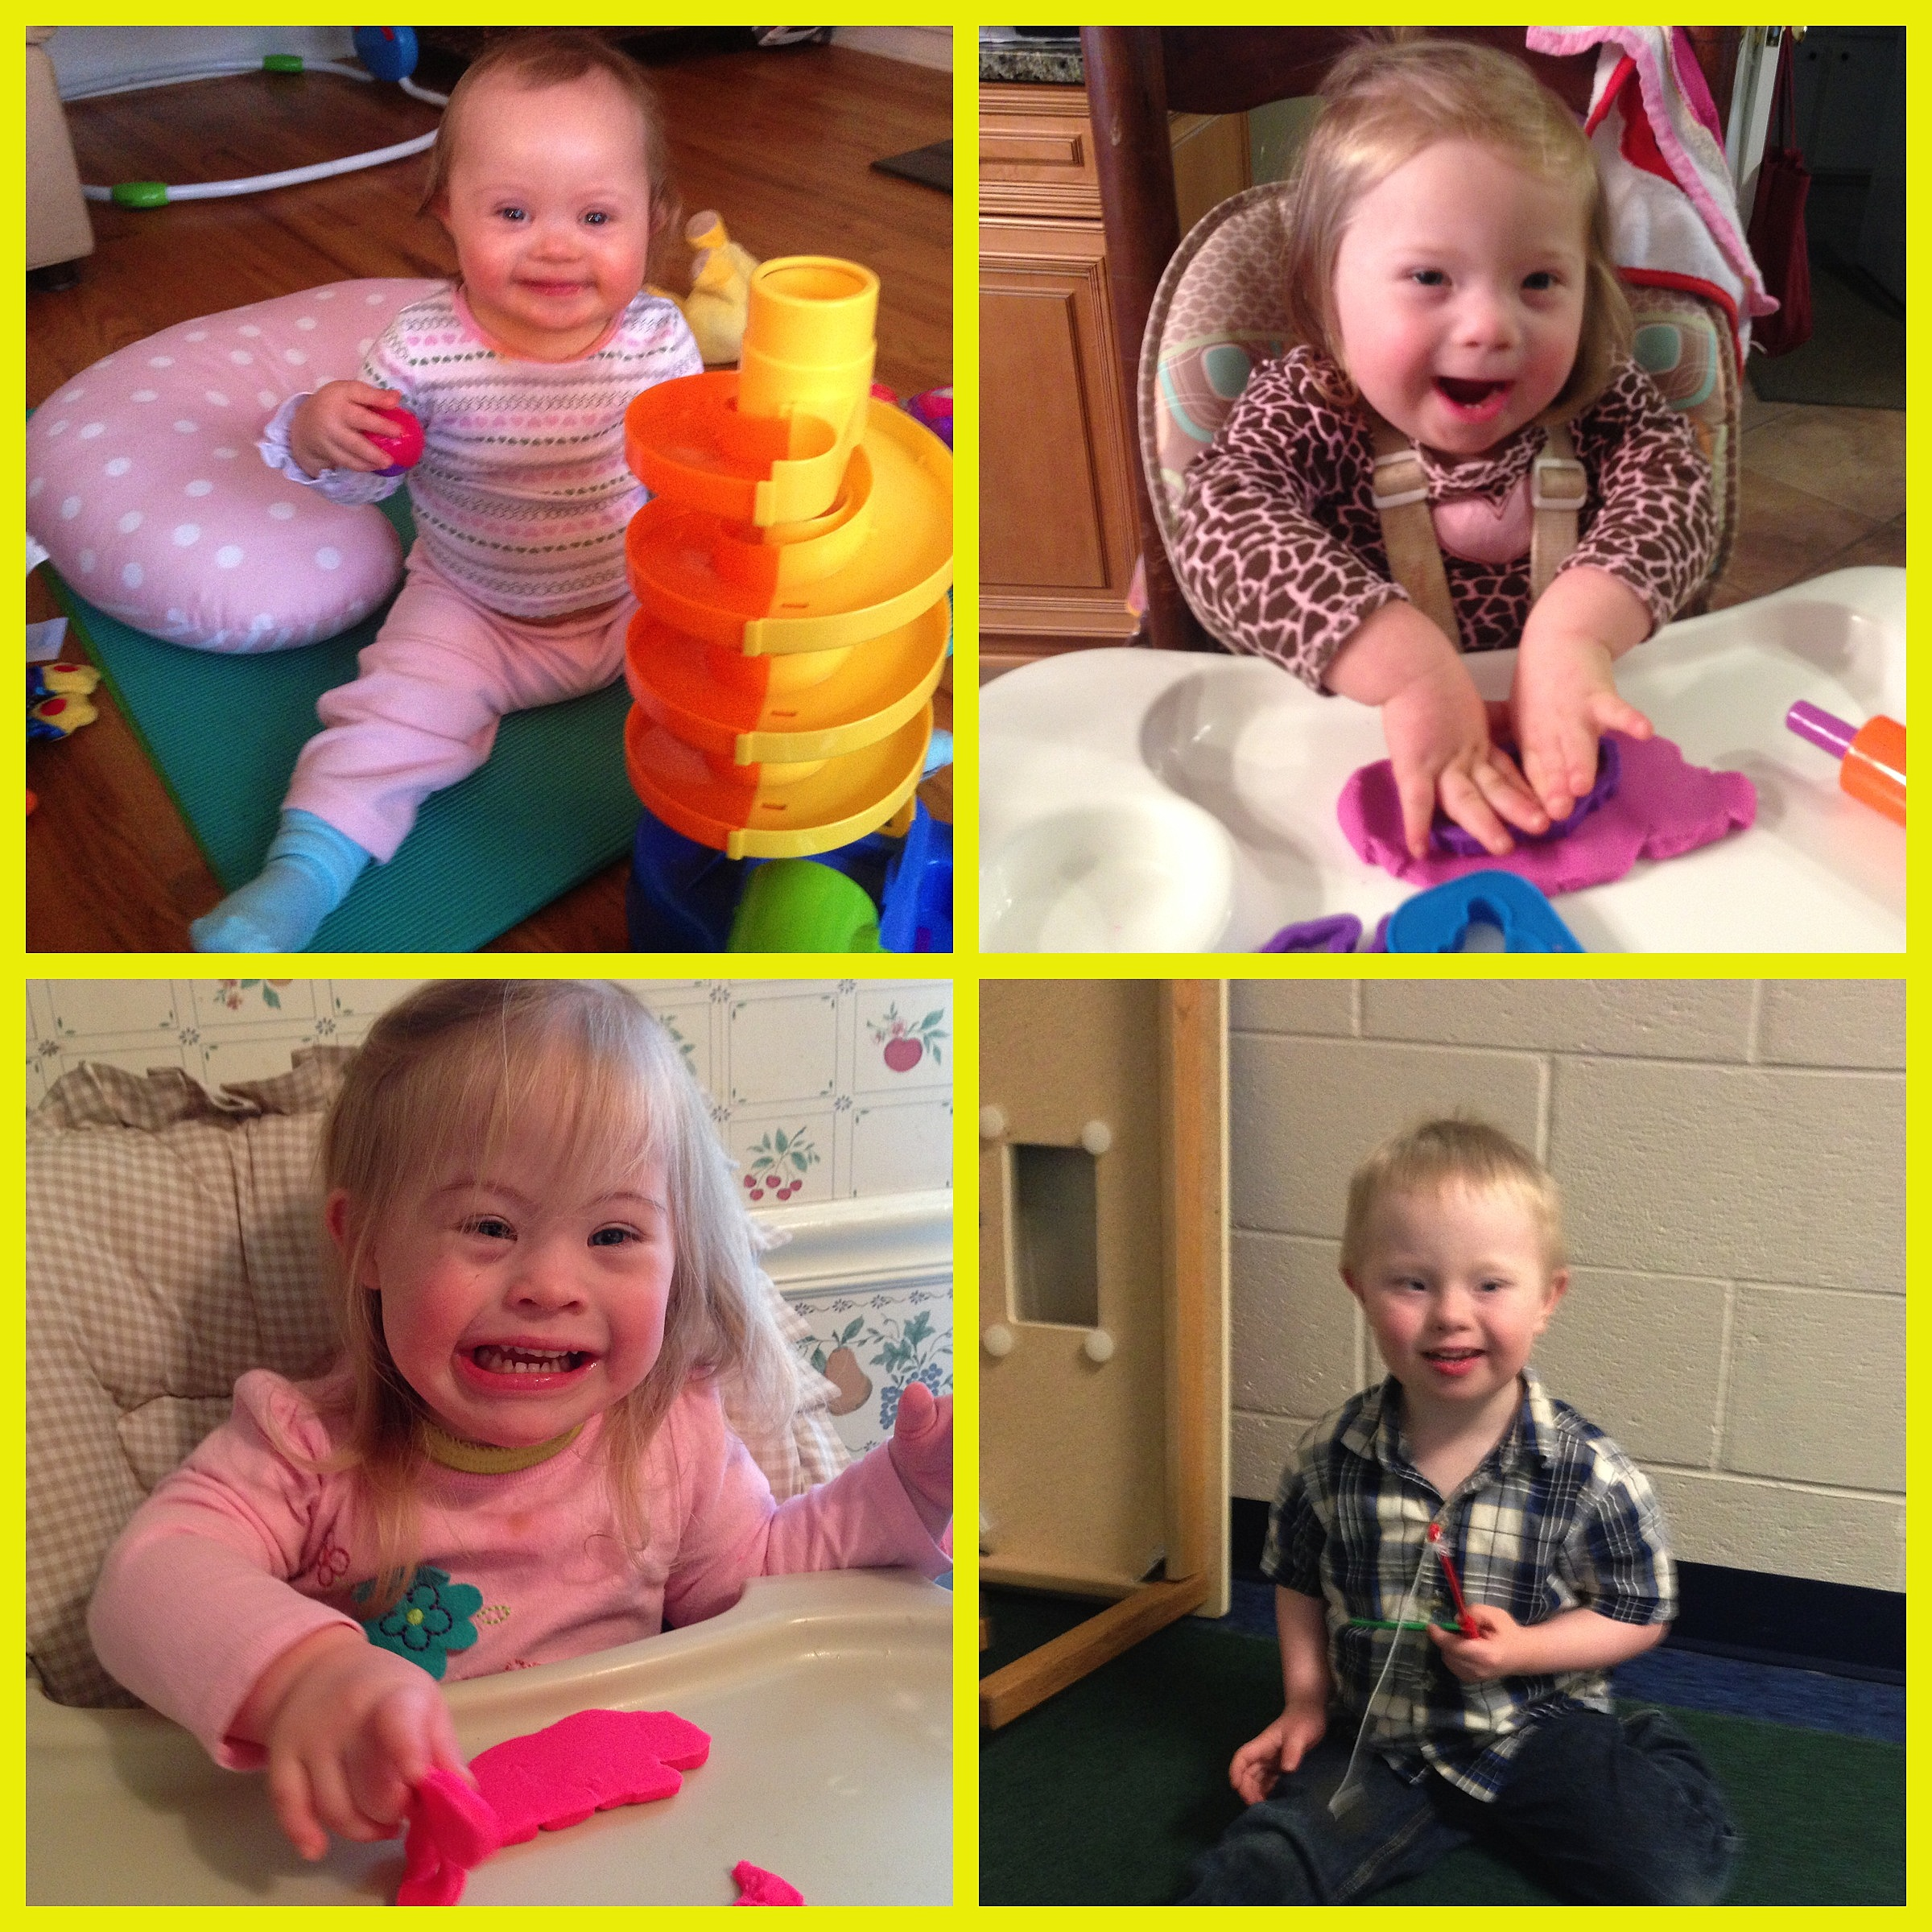 Top 4 Evaluations a Baby with Down Syndrome Needs